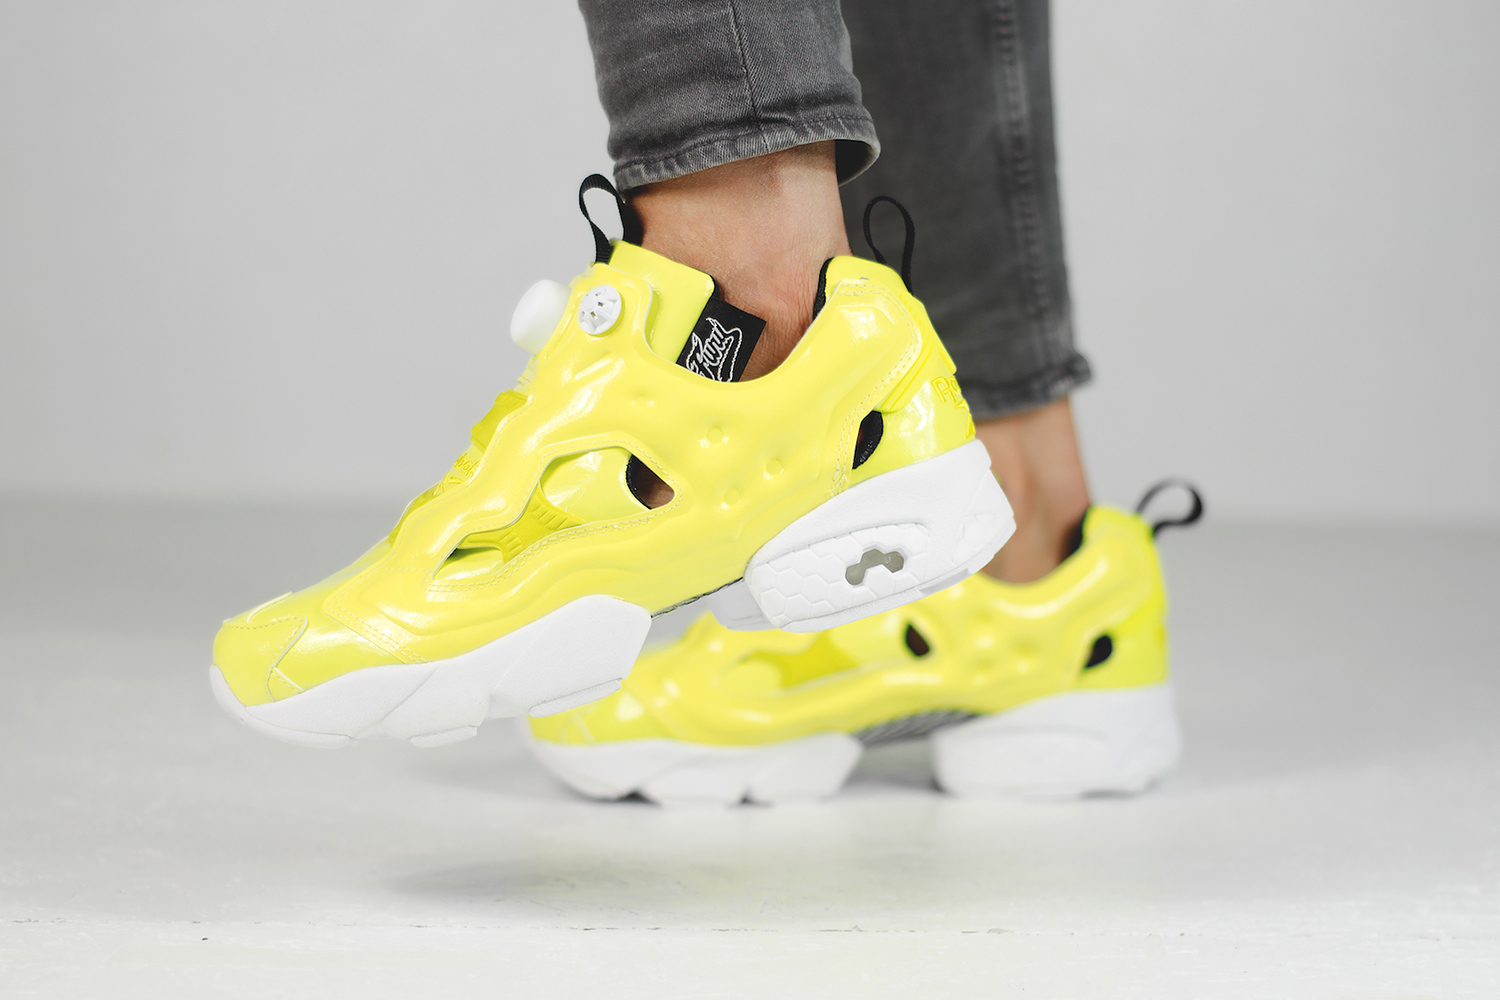 New Colourways for the Reebok Instapump Fury